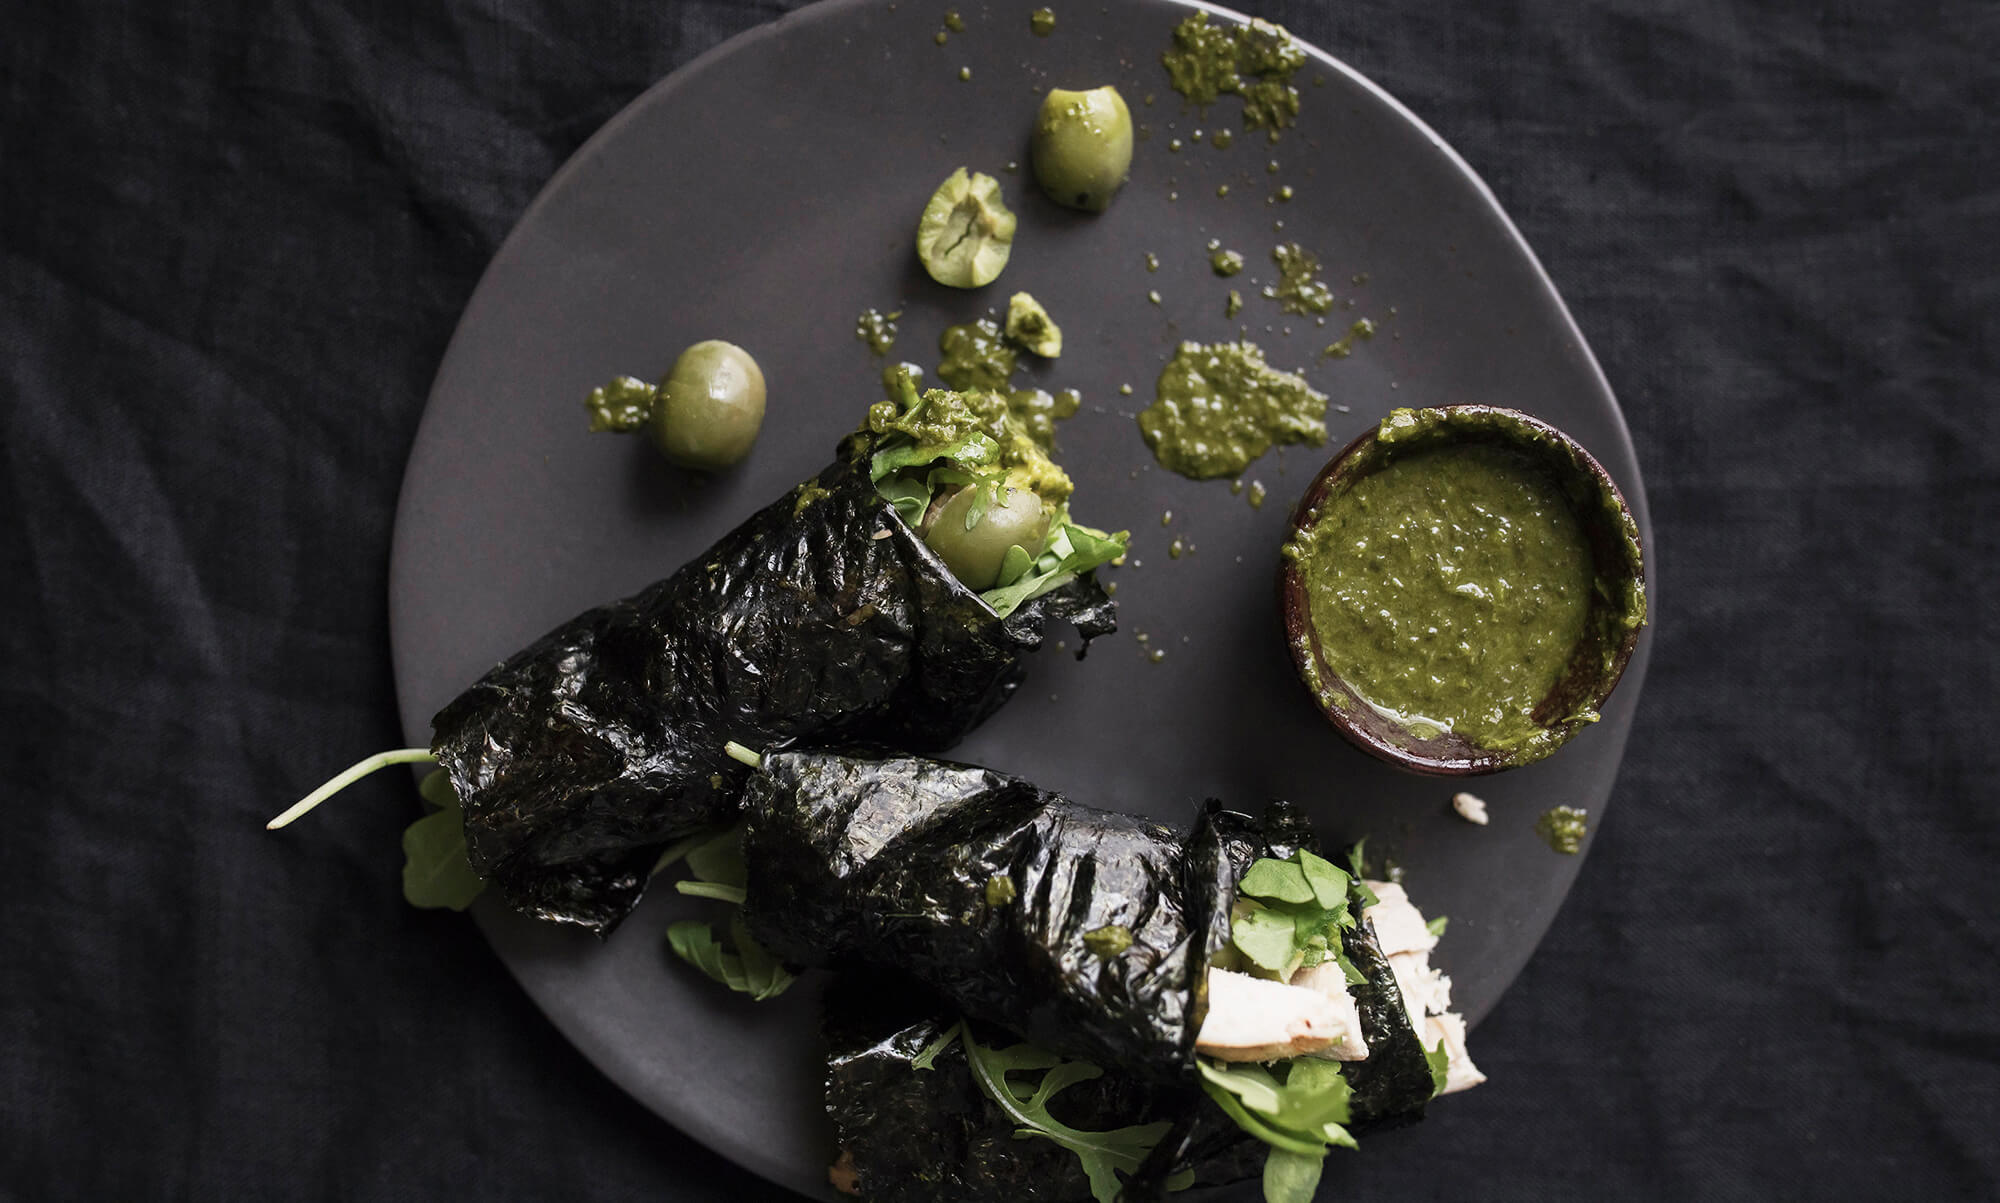 Delicious Avocado Seaweed Wraps with Cilantro Dipping Sauce